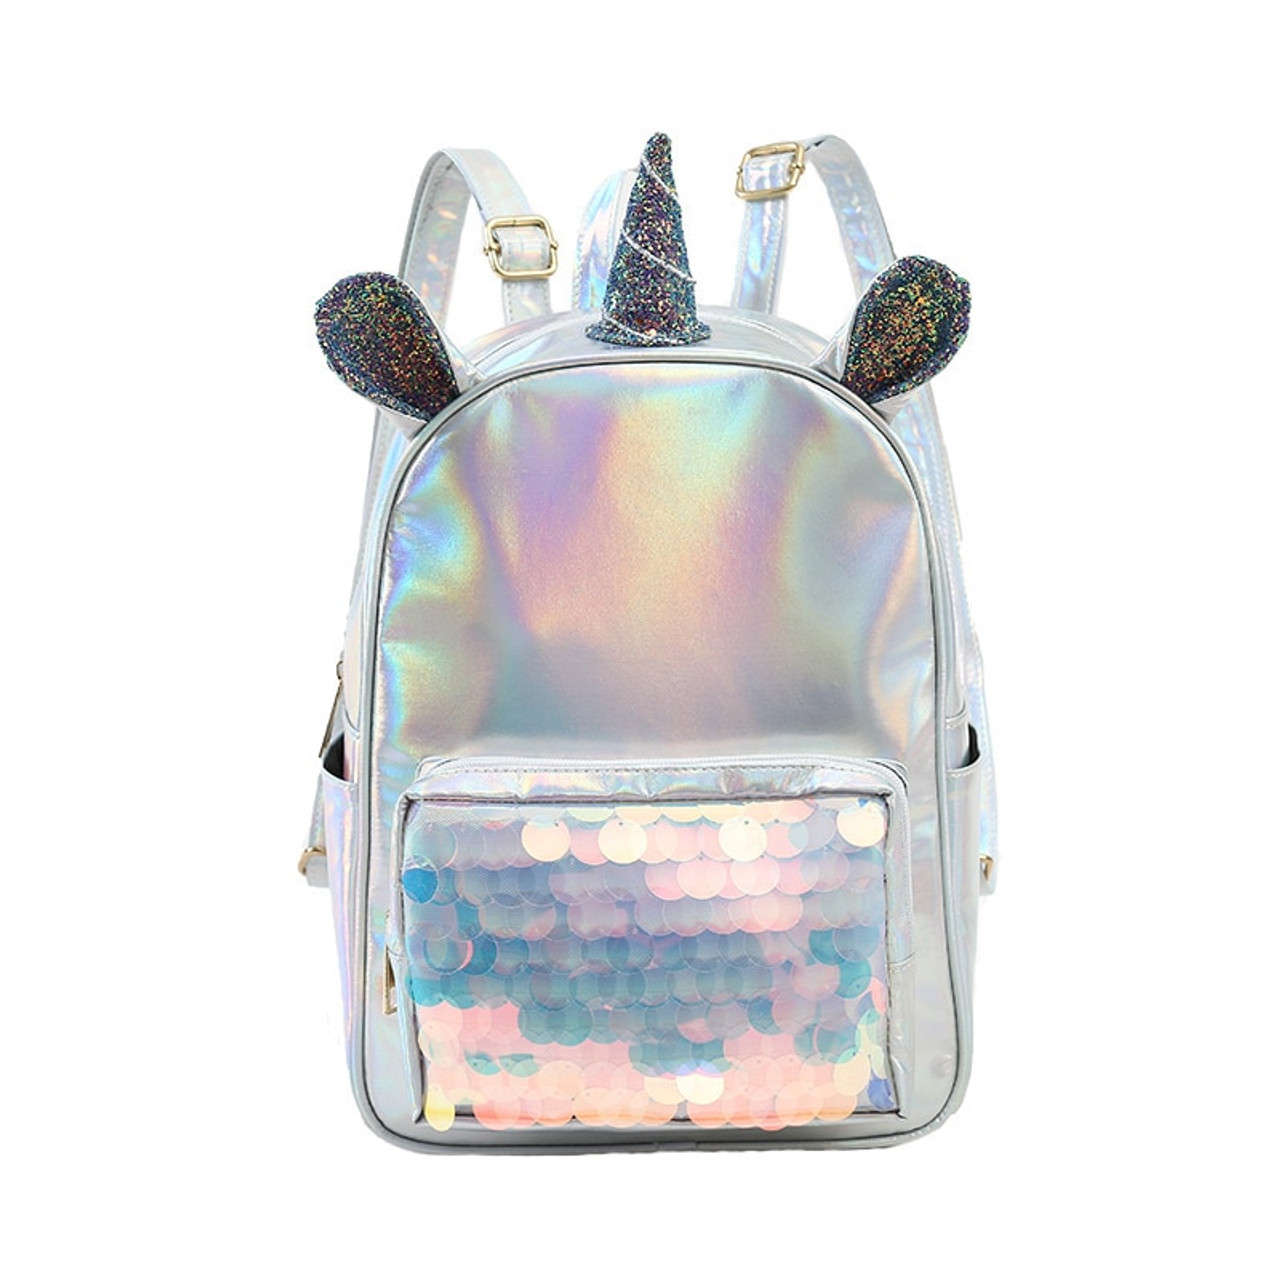 c868cea3fa0 New 2019 Laser Leather Mini Backpack For Women Sequins Unicorn Mochila  Girls Travel Back Bags Silver Fashion School Bagpack